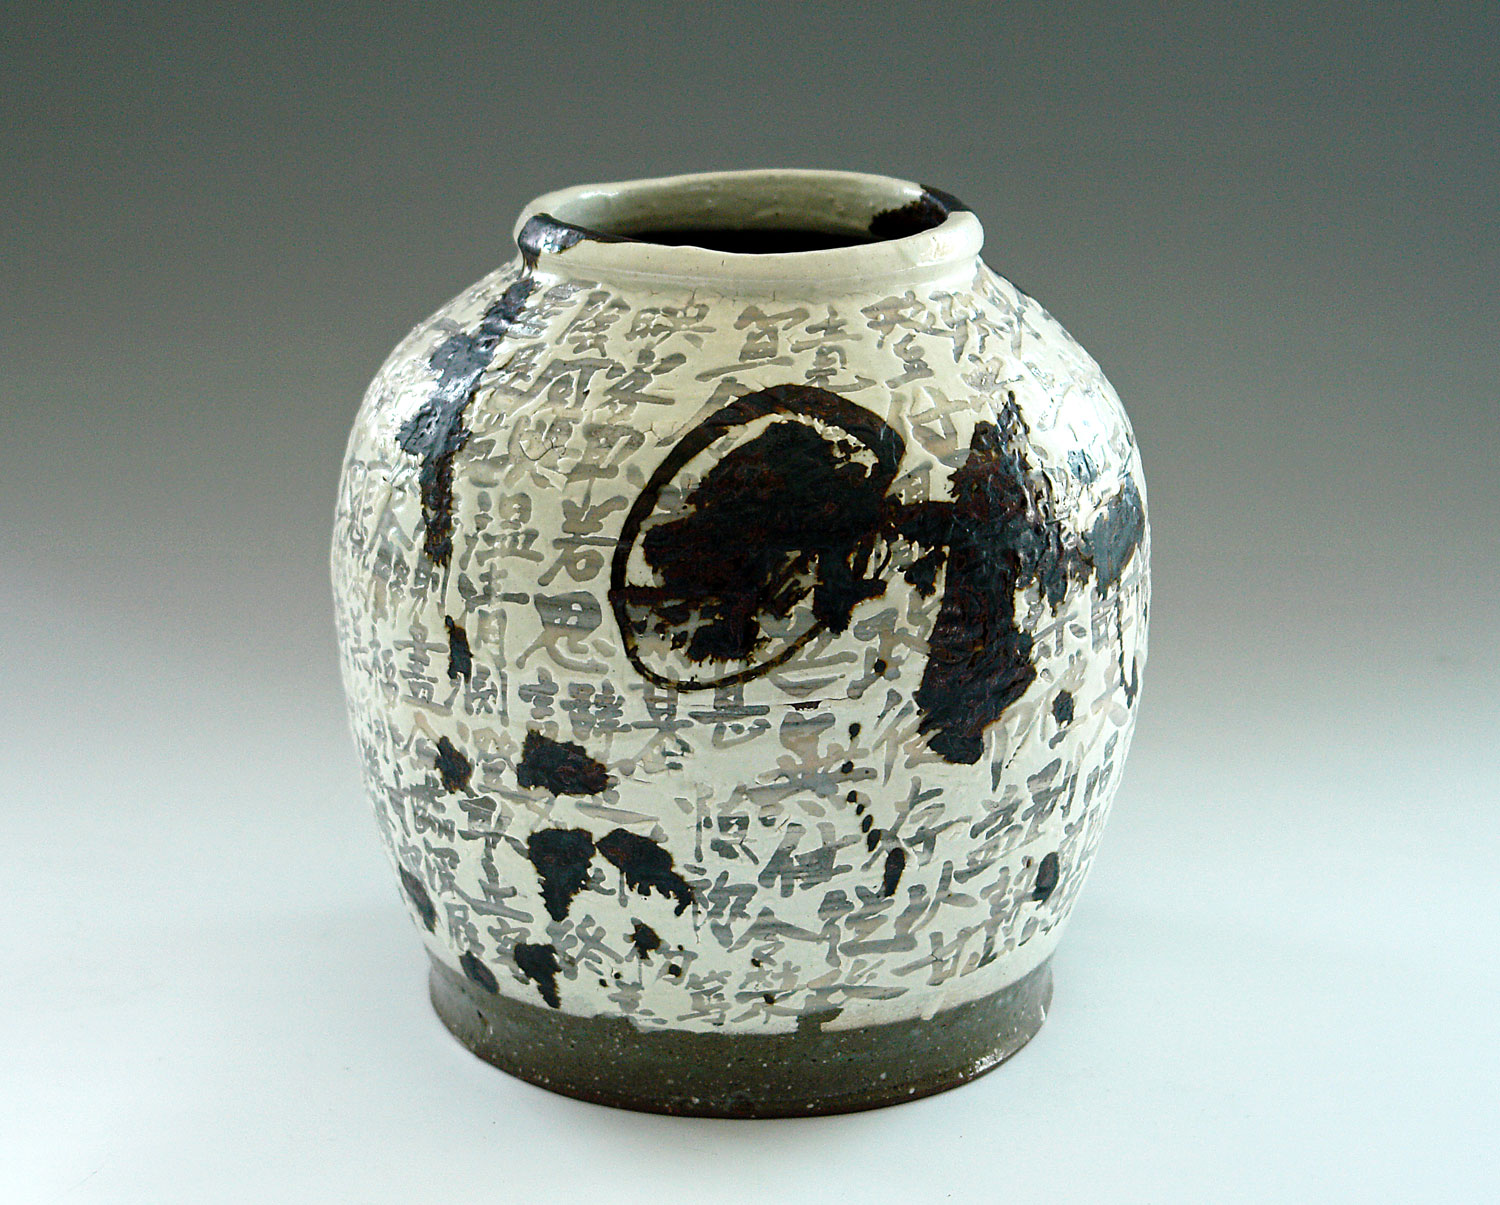 Ree-Soojong_Cousins-in-Clay_Bulldog-Pottery_May-30-31-2020_Seagrove_NC.jpg